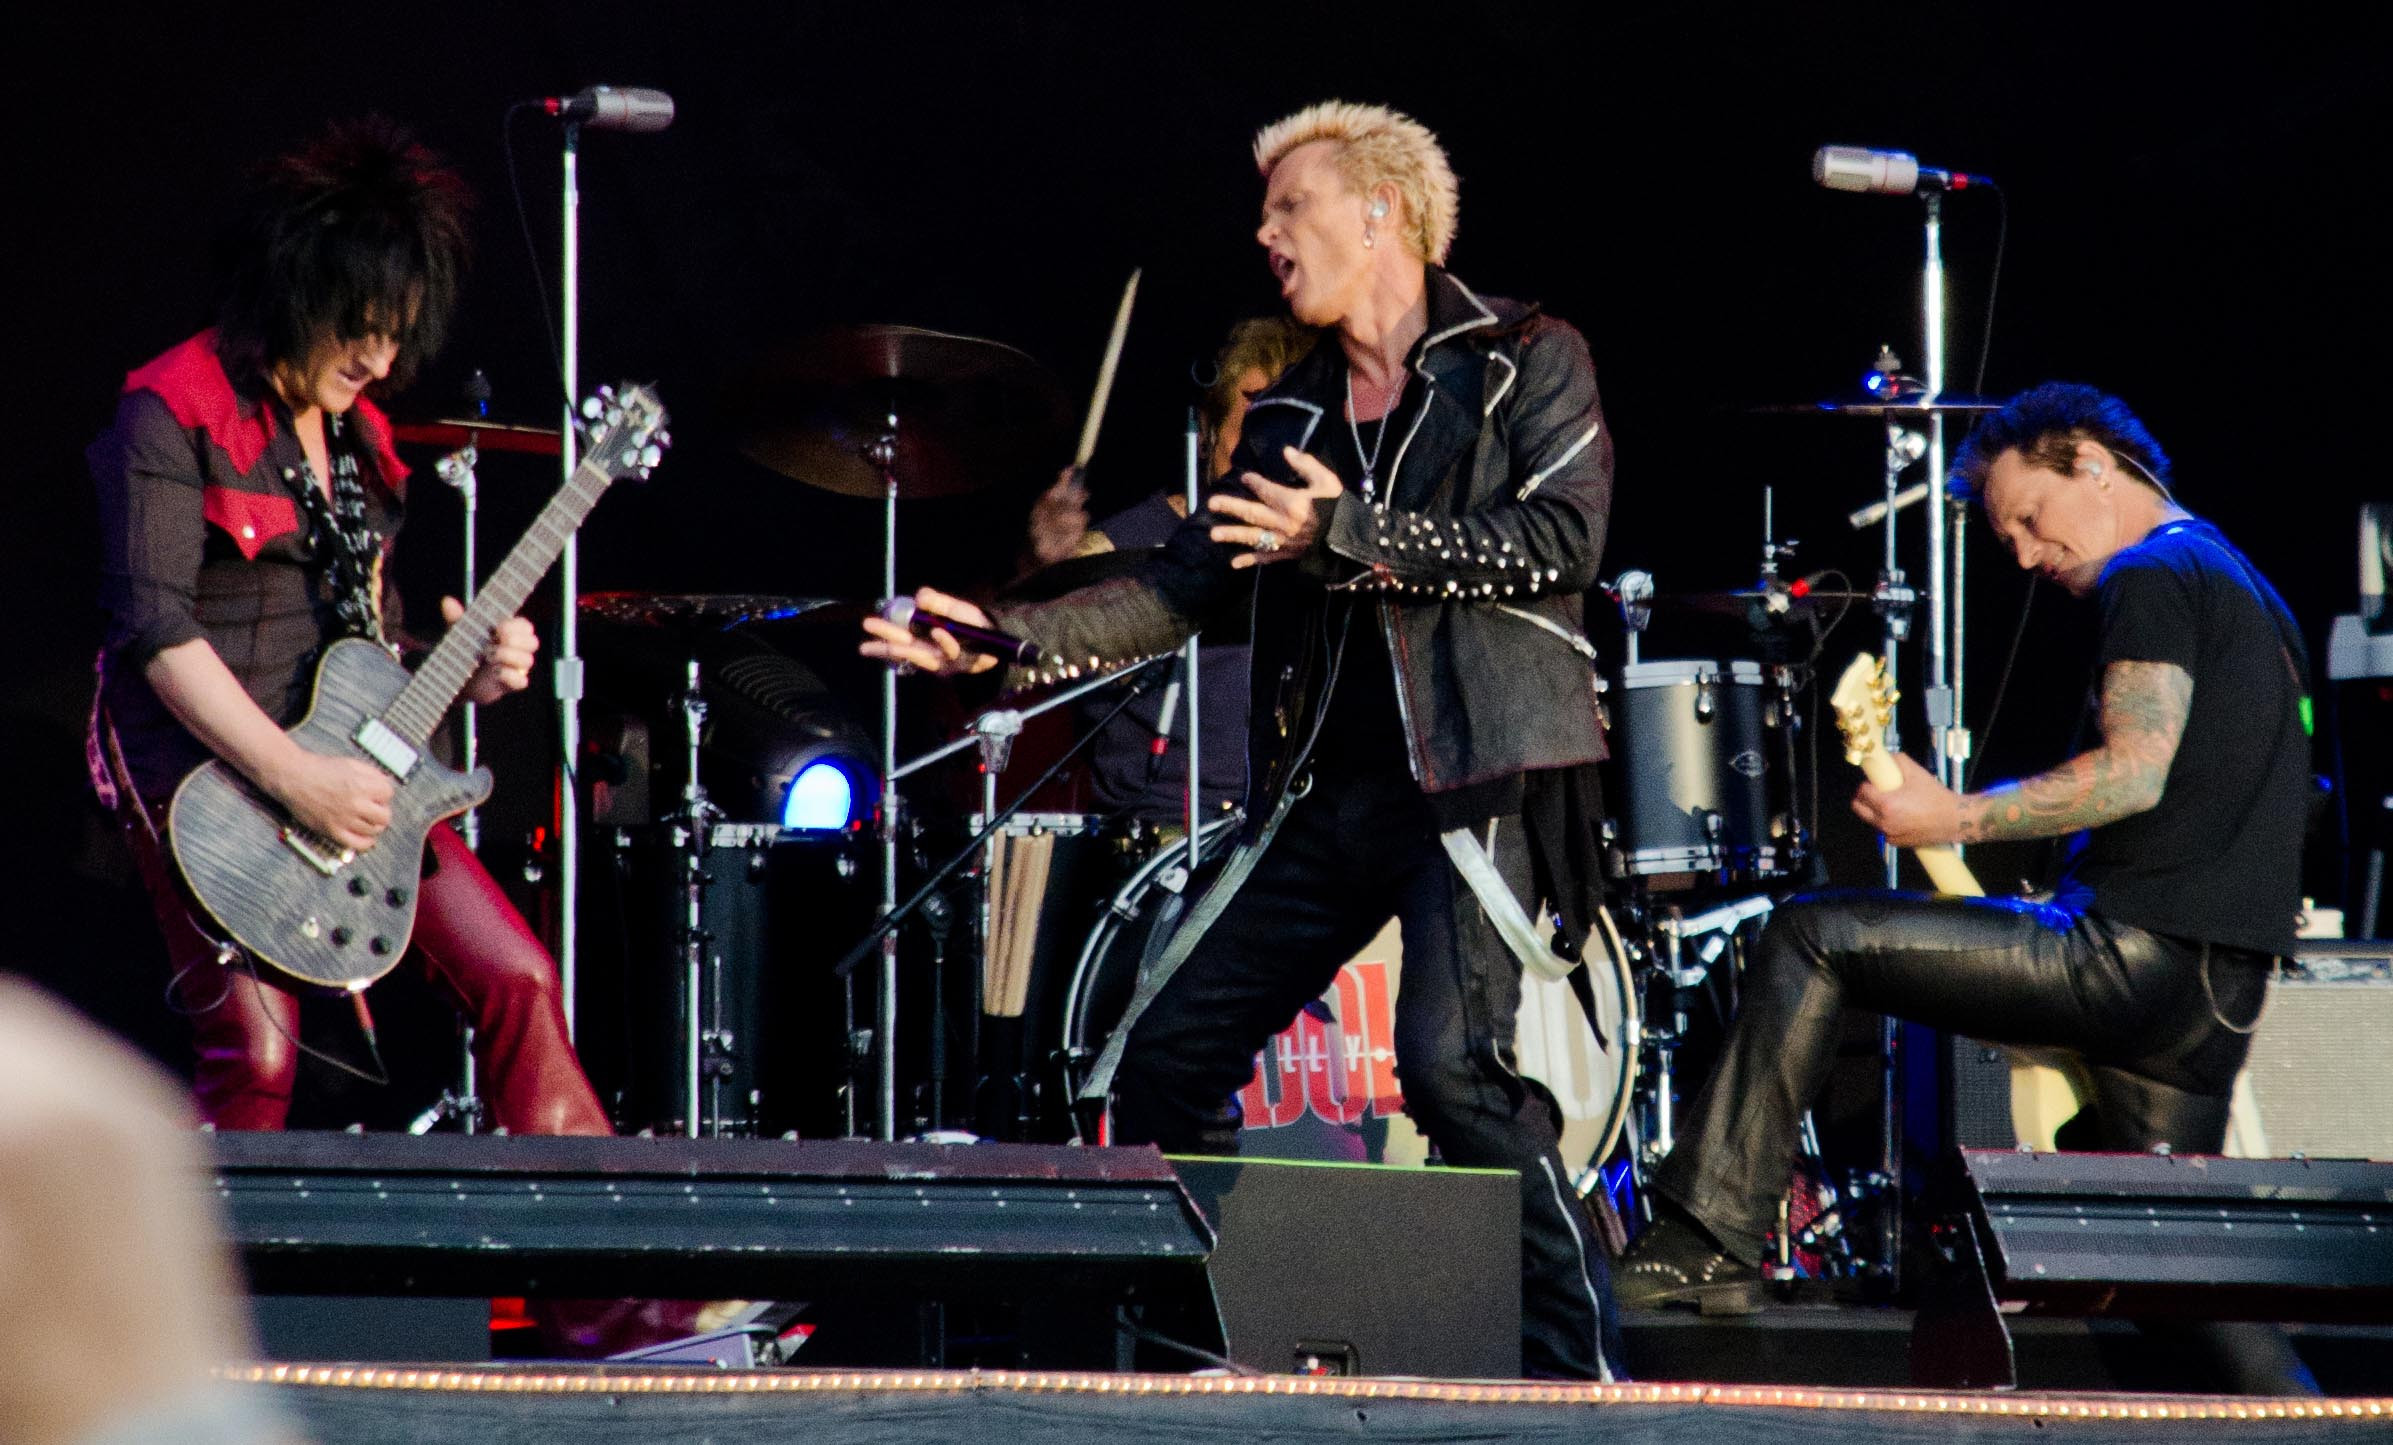 Billy idol!